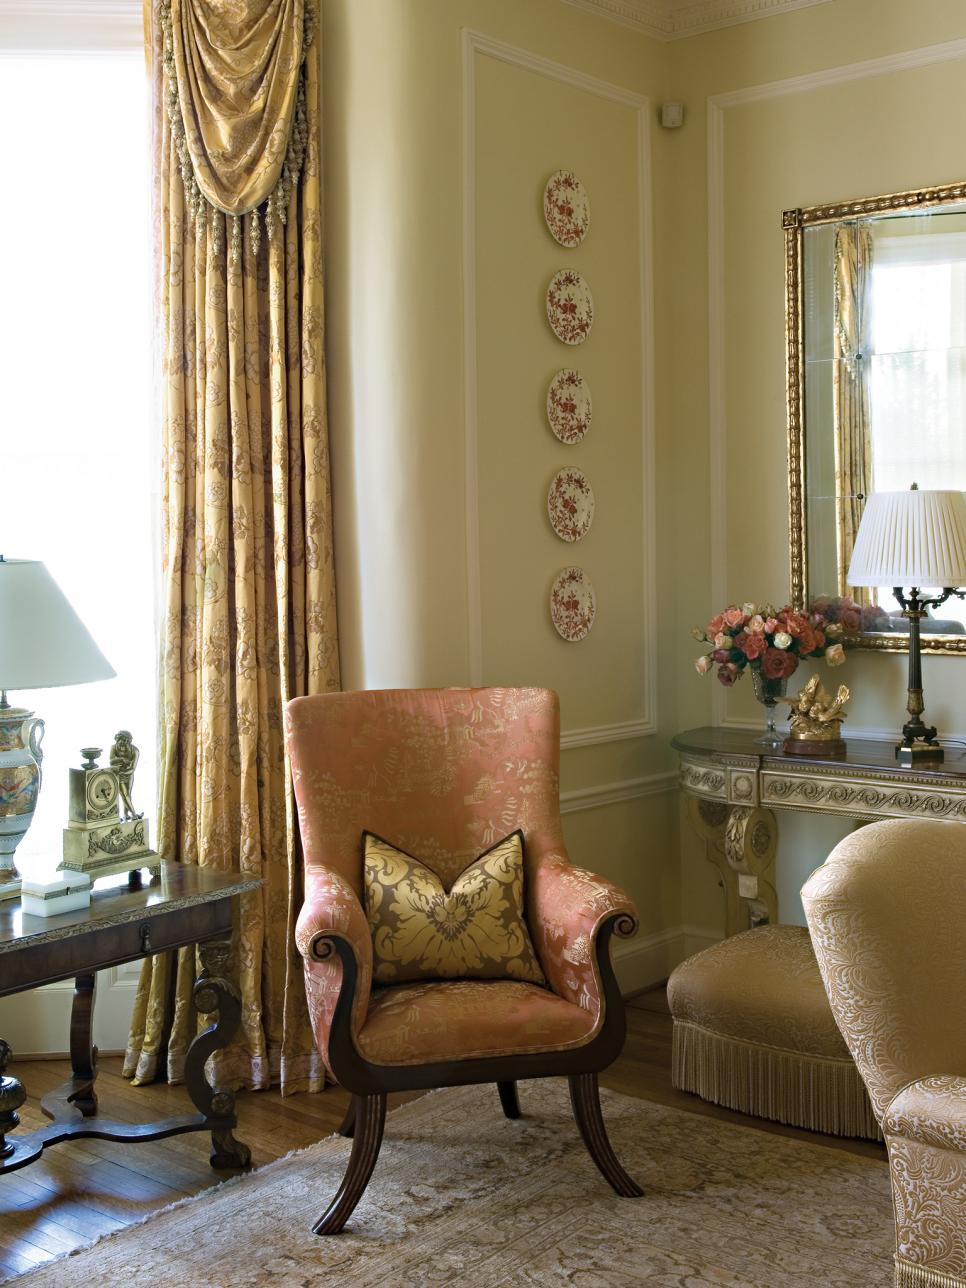 Corner of Sitting Room With Plate Collection & Peach Armchair